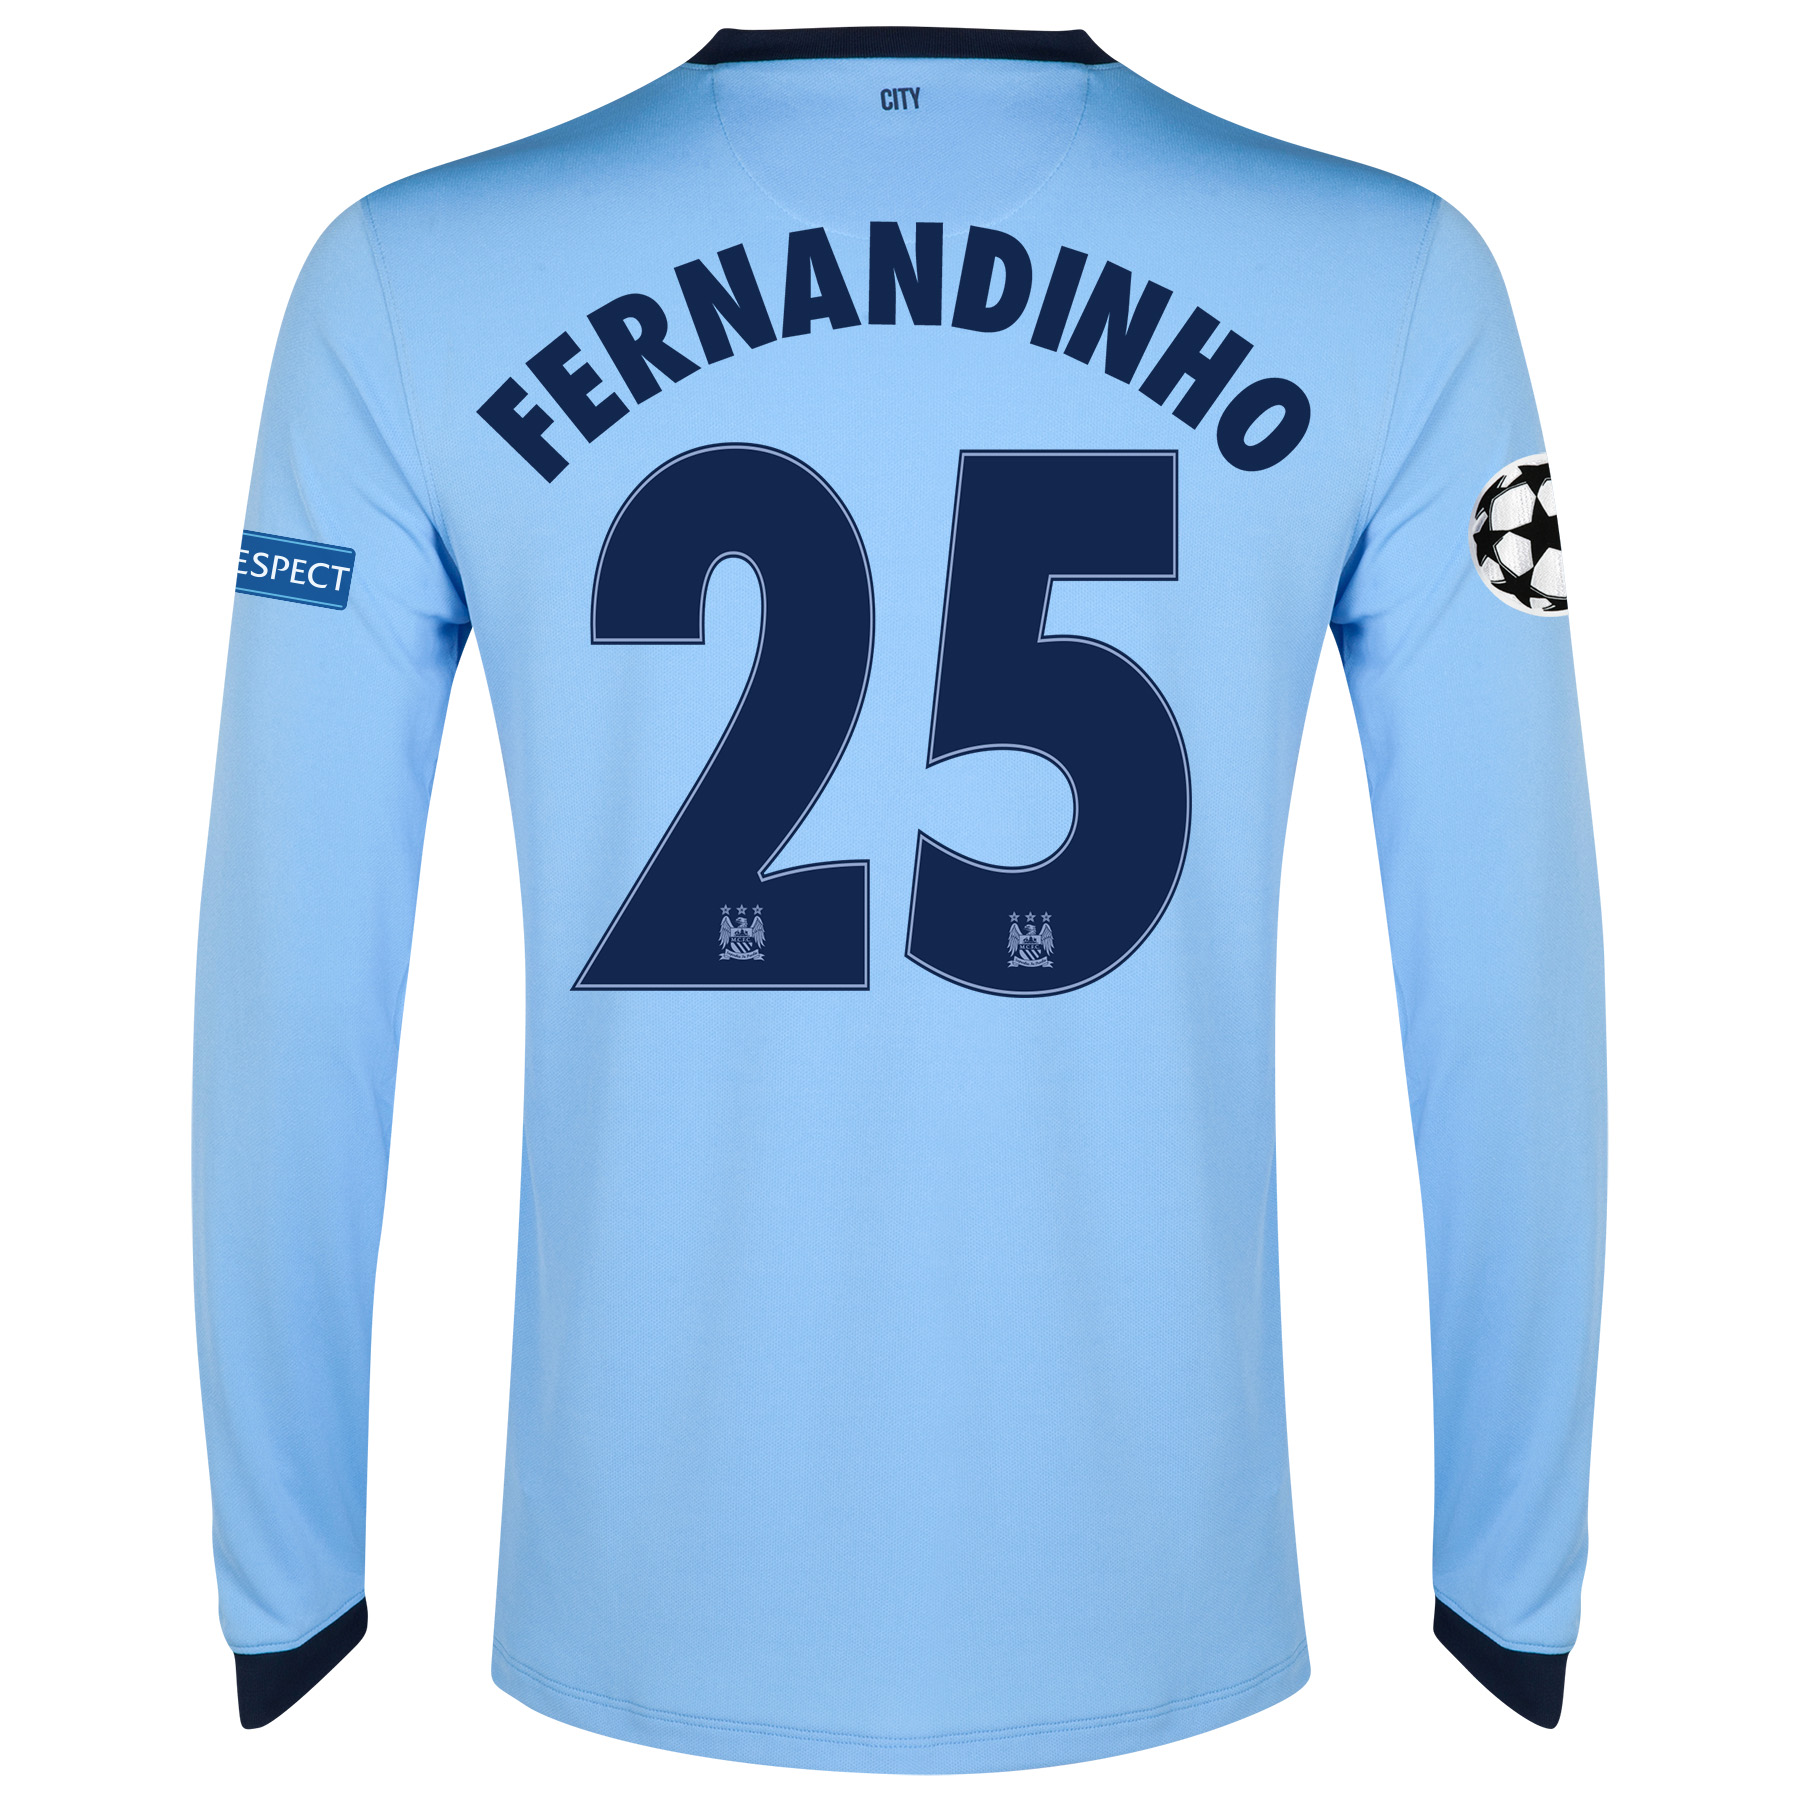 Manchester City UEFA Champions League Home Shirt 2014/15 - Long Sleeve Sky Blue with Fernandinho 25 printing